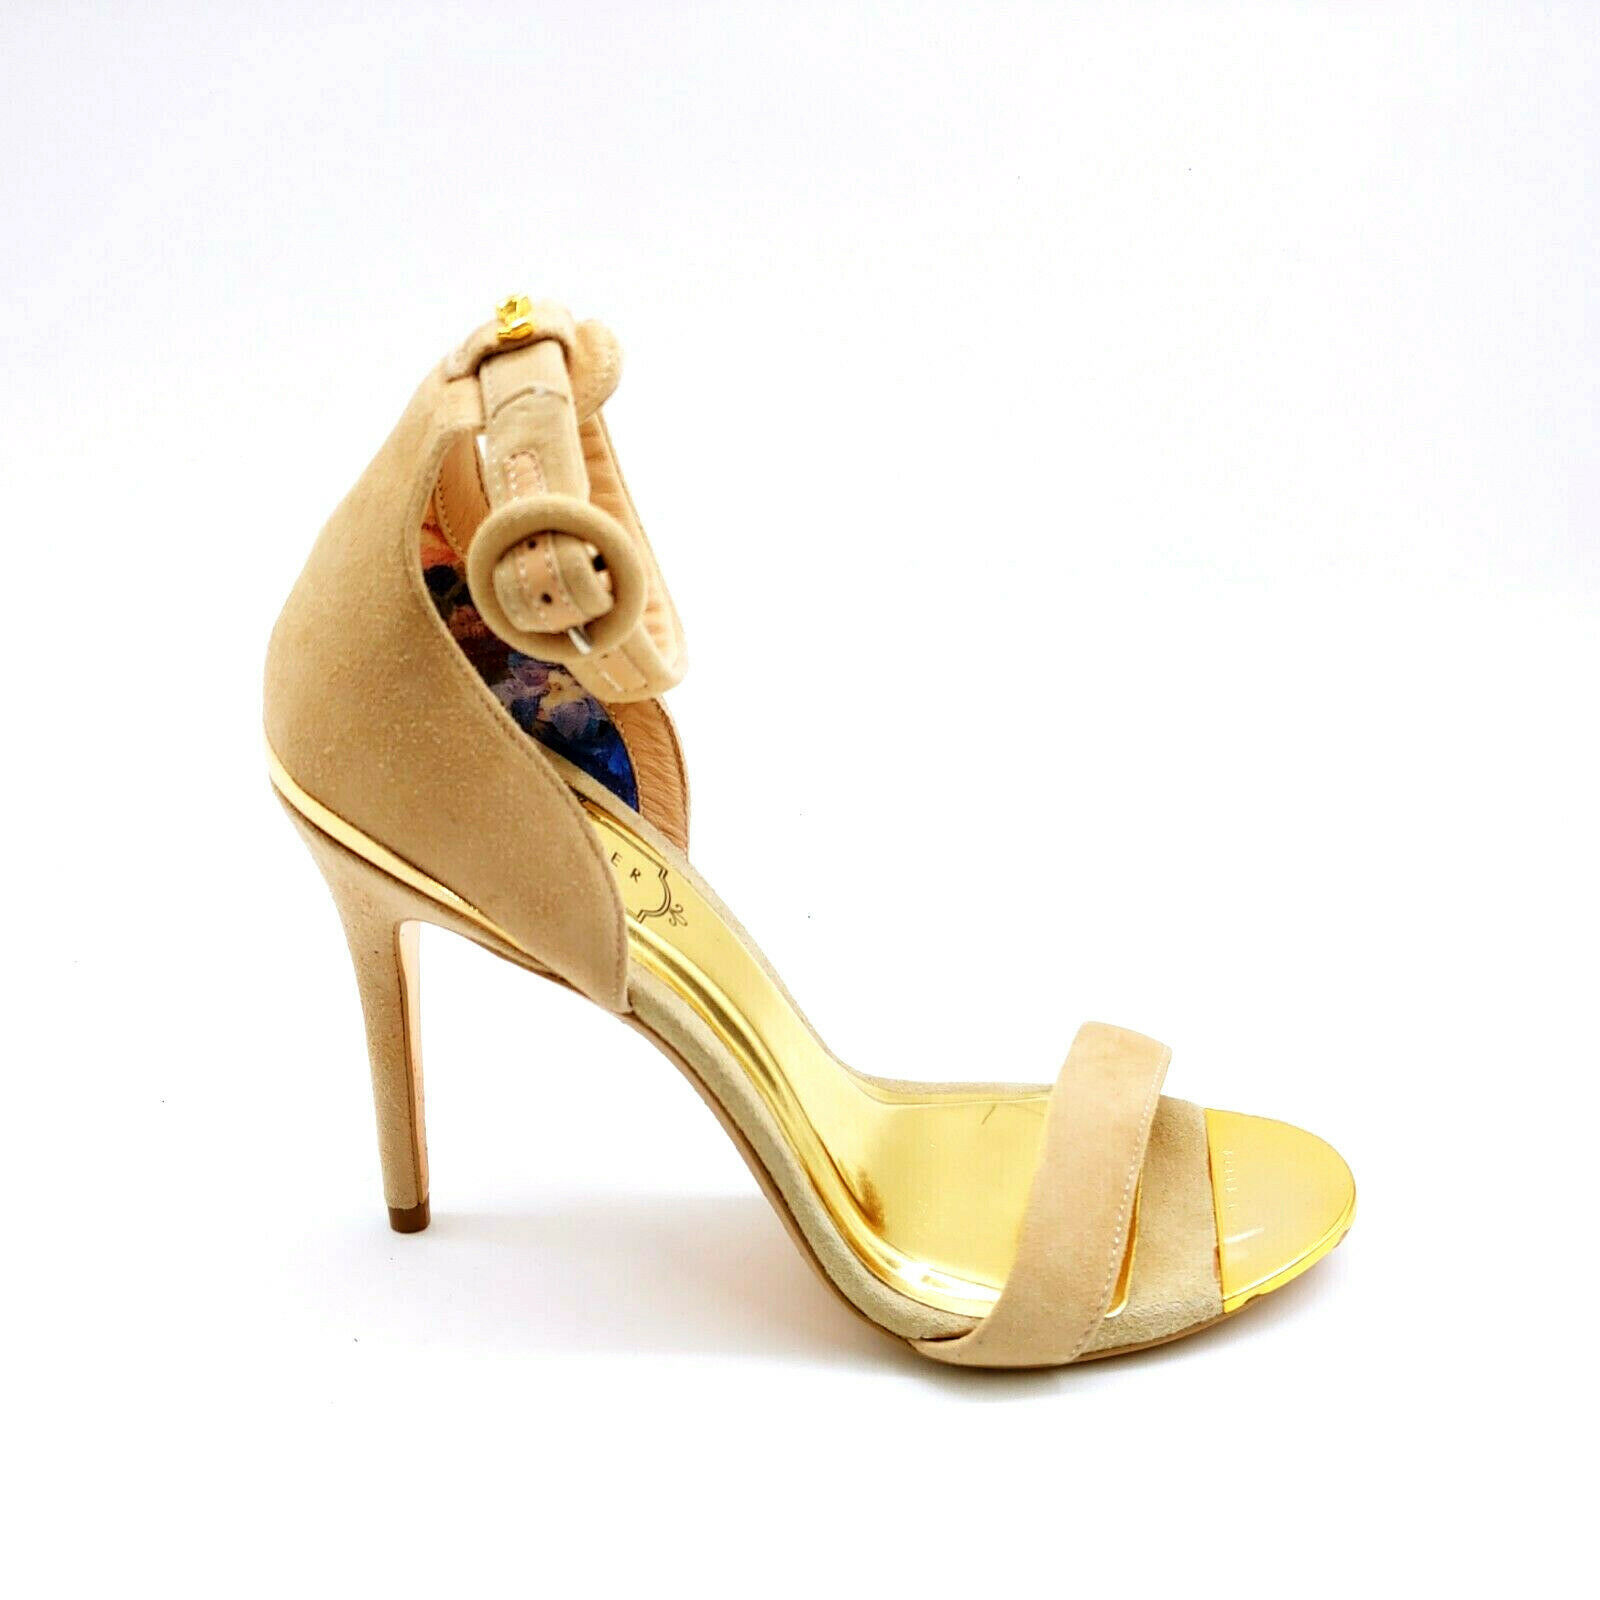 Primary image for Ted Baker Womans Rynne Ankle Strap High Heels Beige Suede Open Toe Sz 6 M